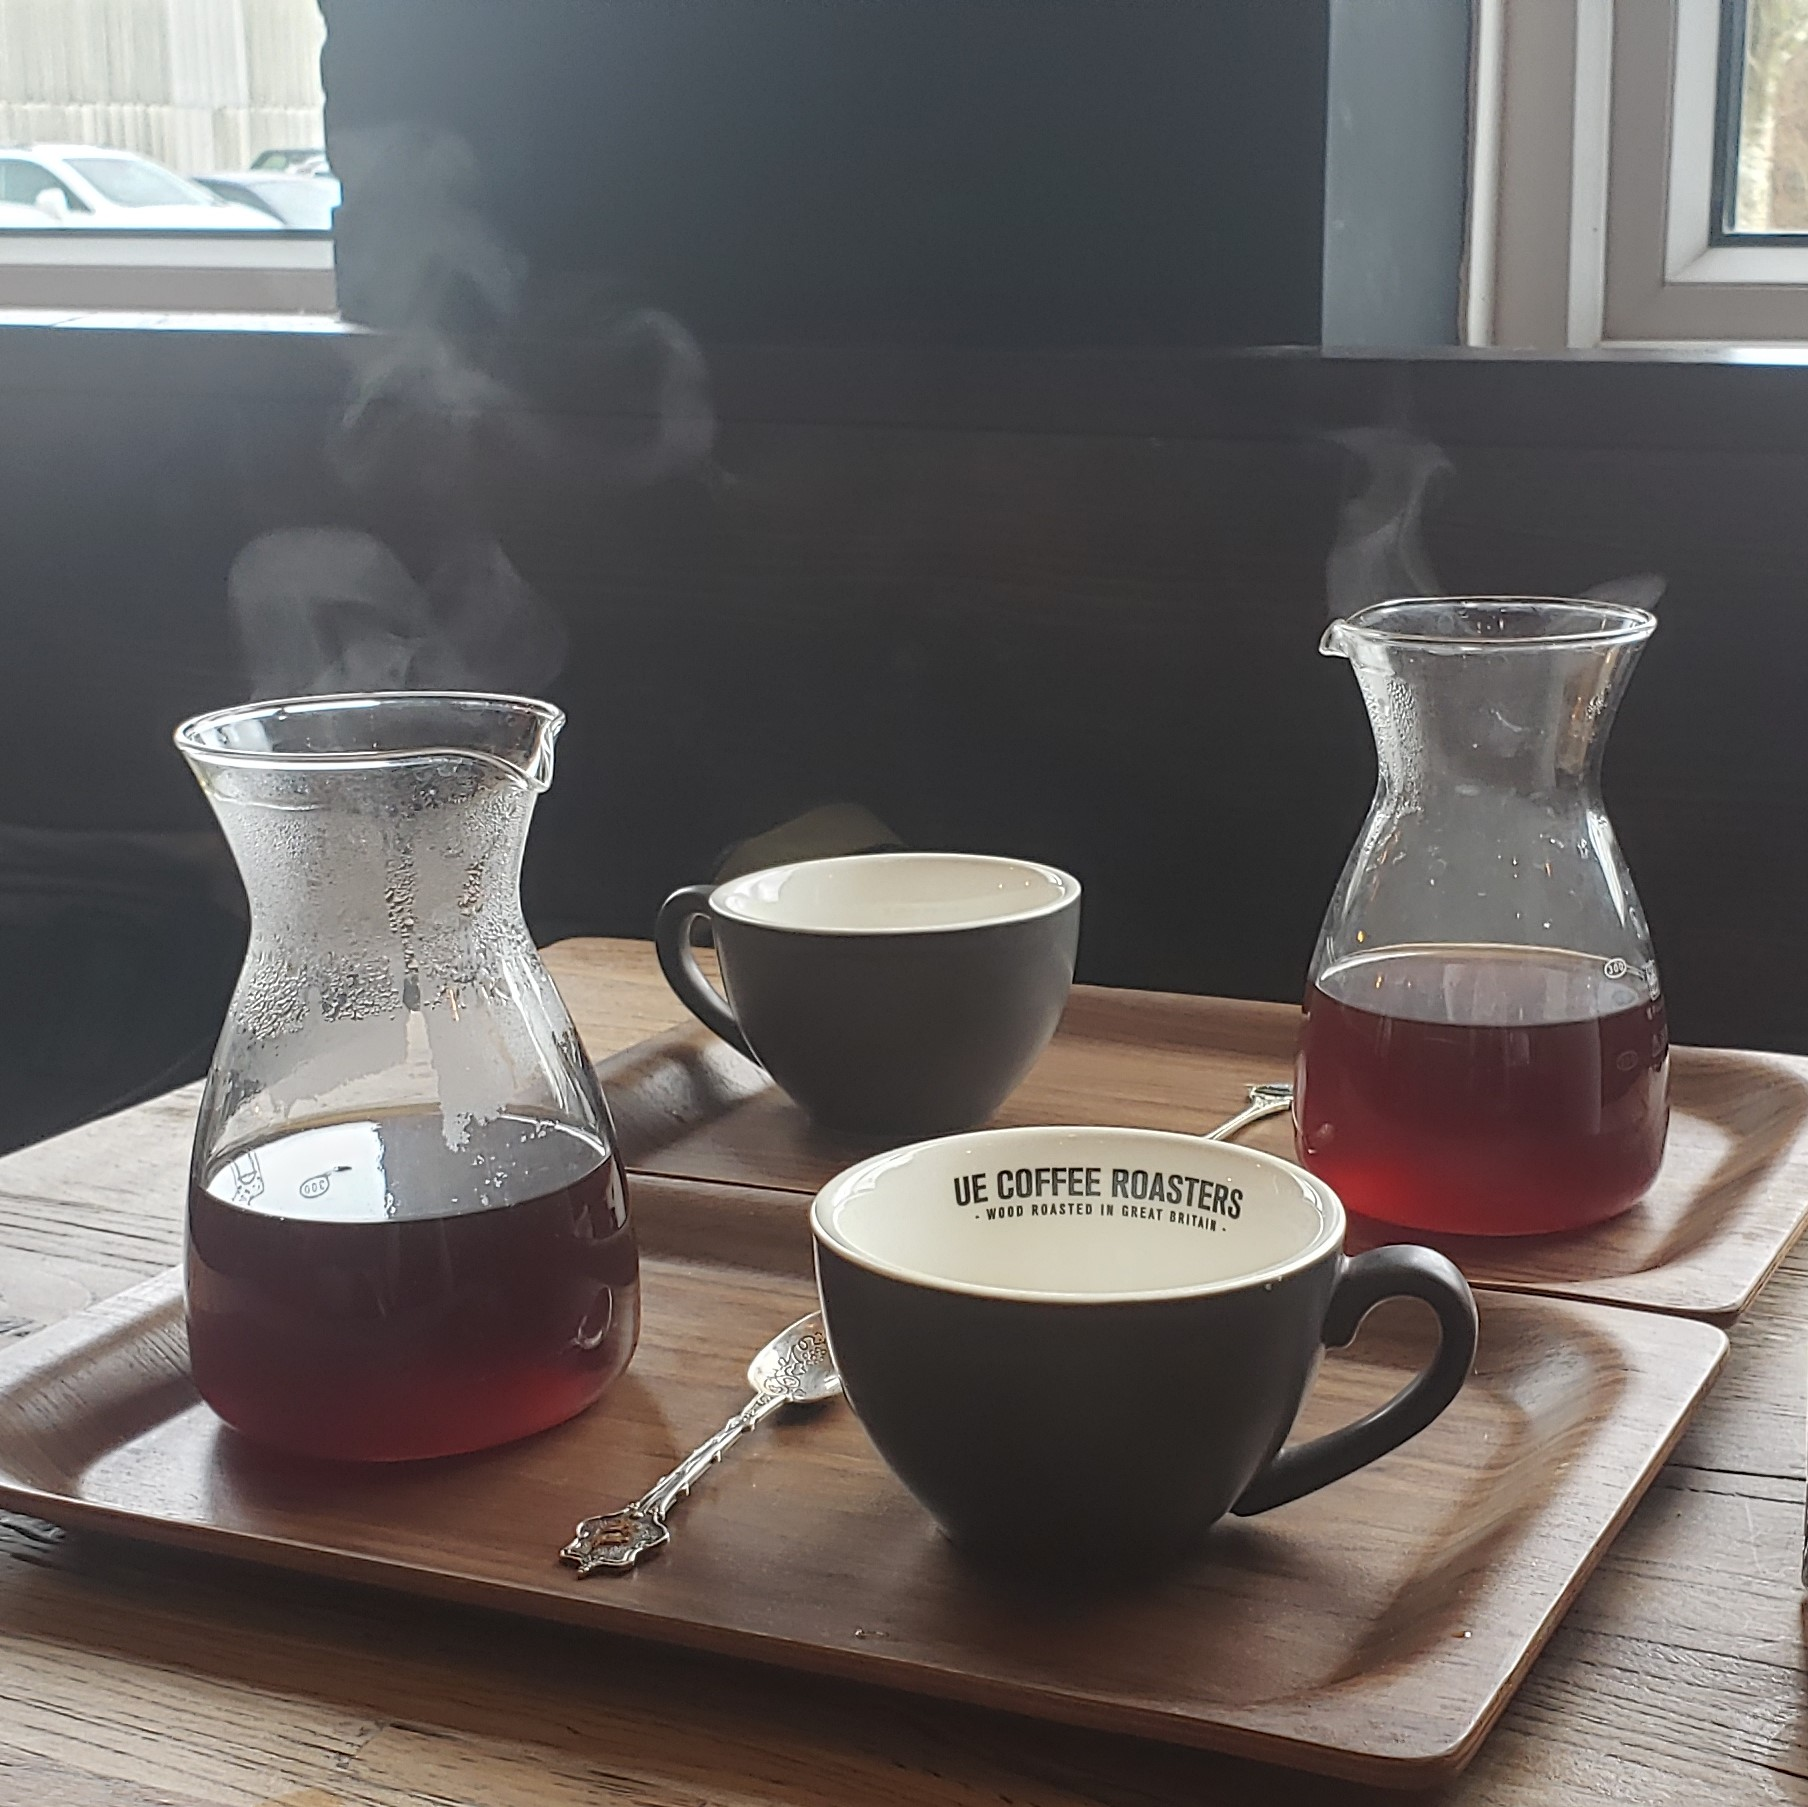 A pair of pour-overs sitting on a table in the window of the Ue Coffee Roasters Cafe & Kitchen in Witney, slowly steaming in the afternoon sun.